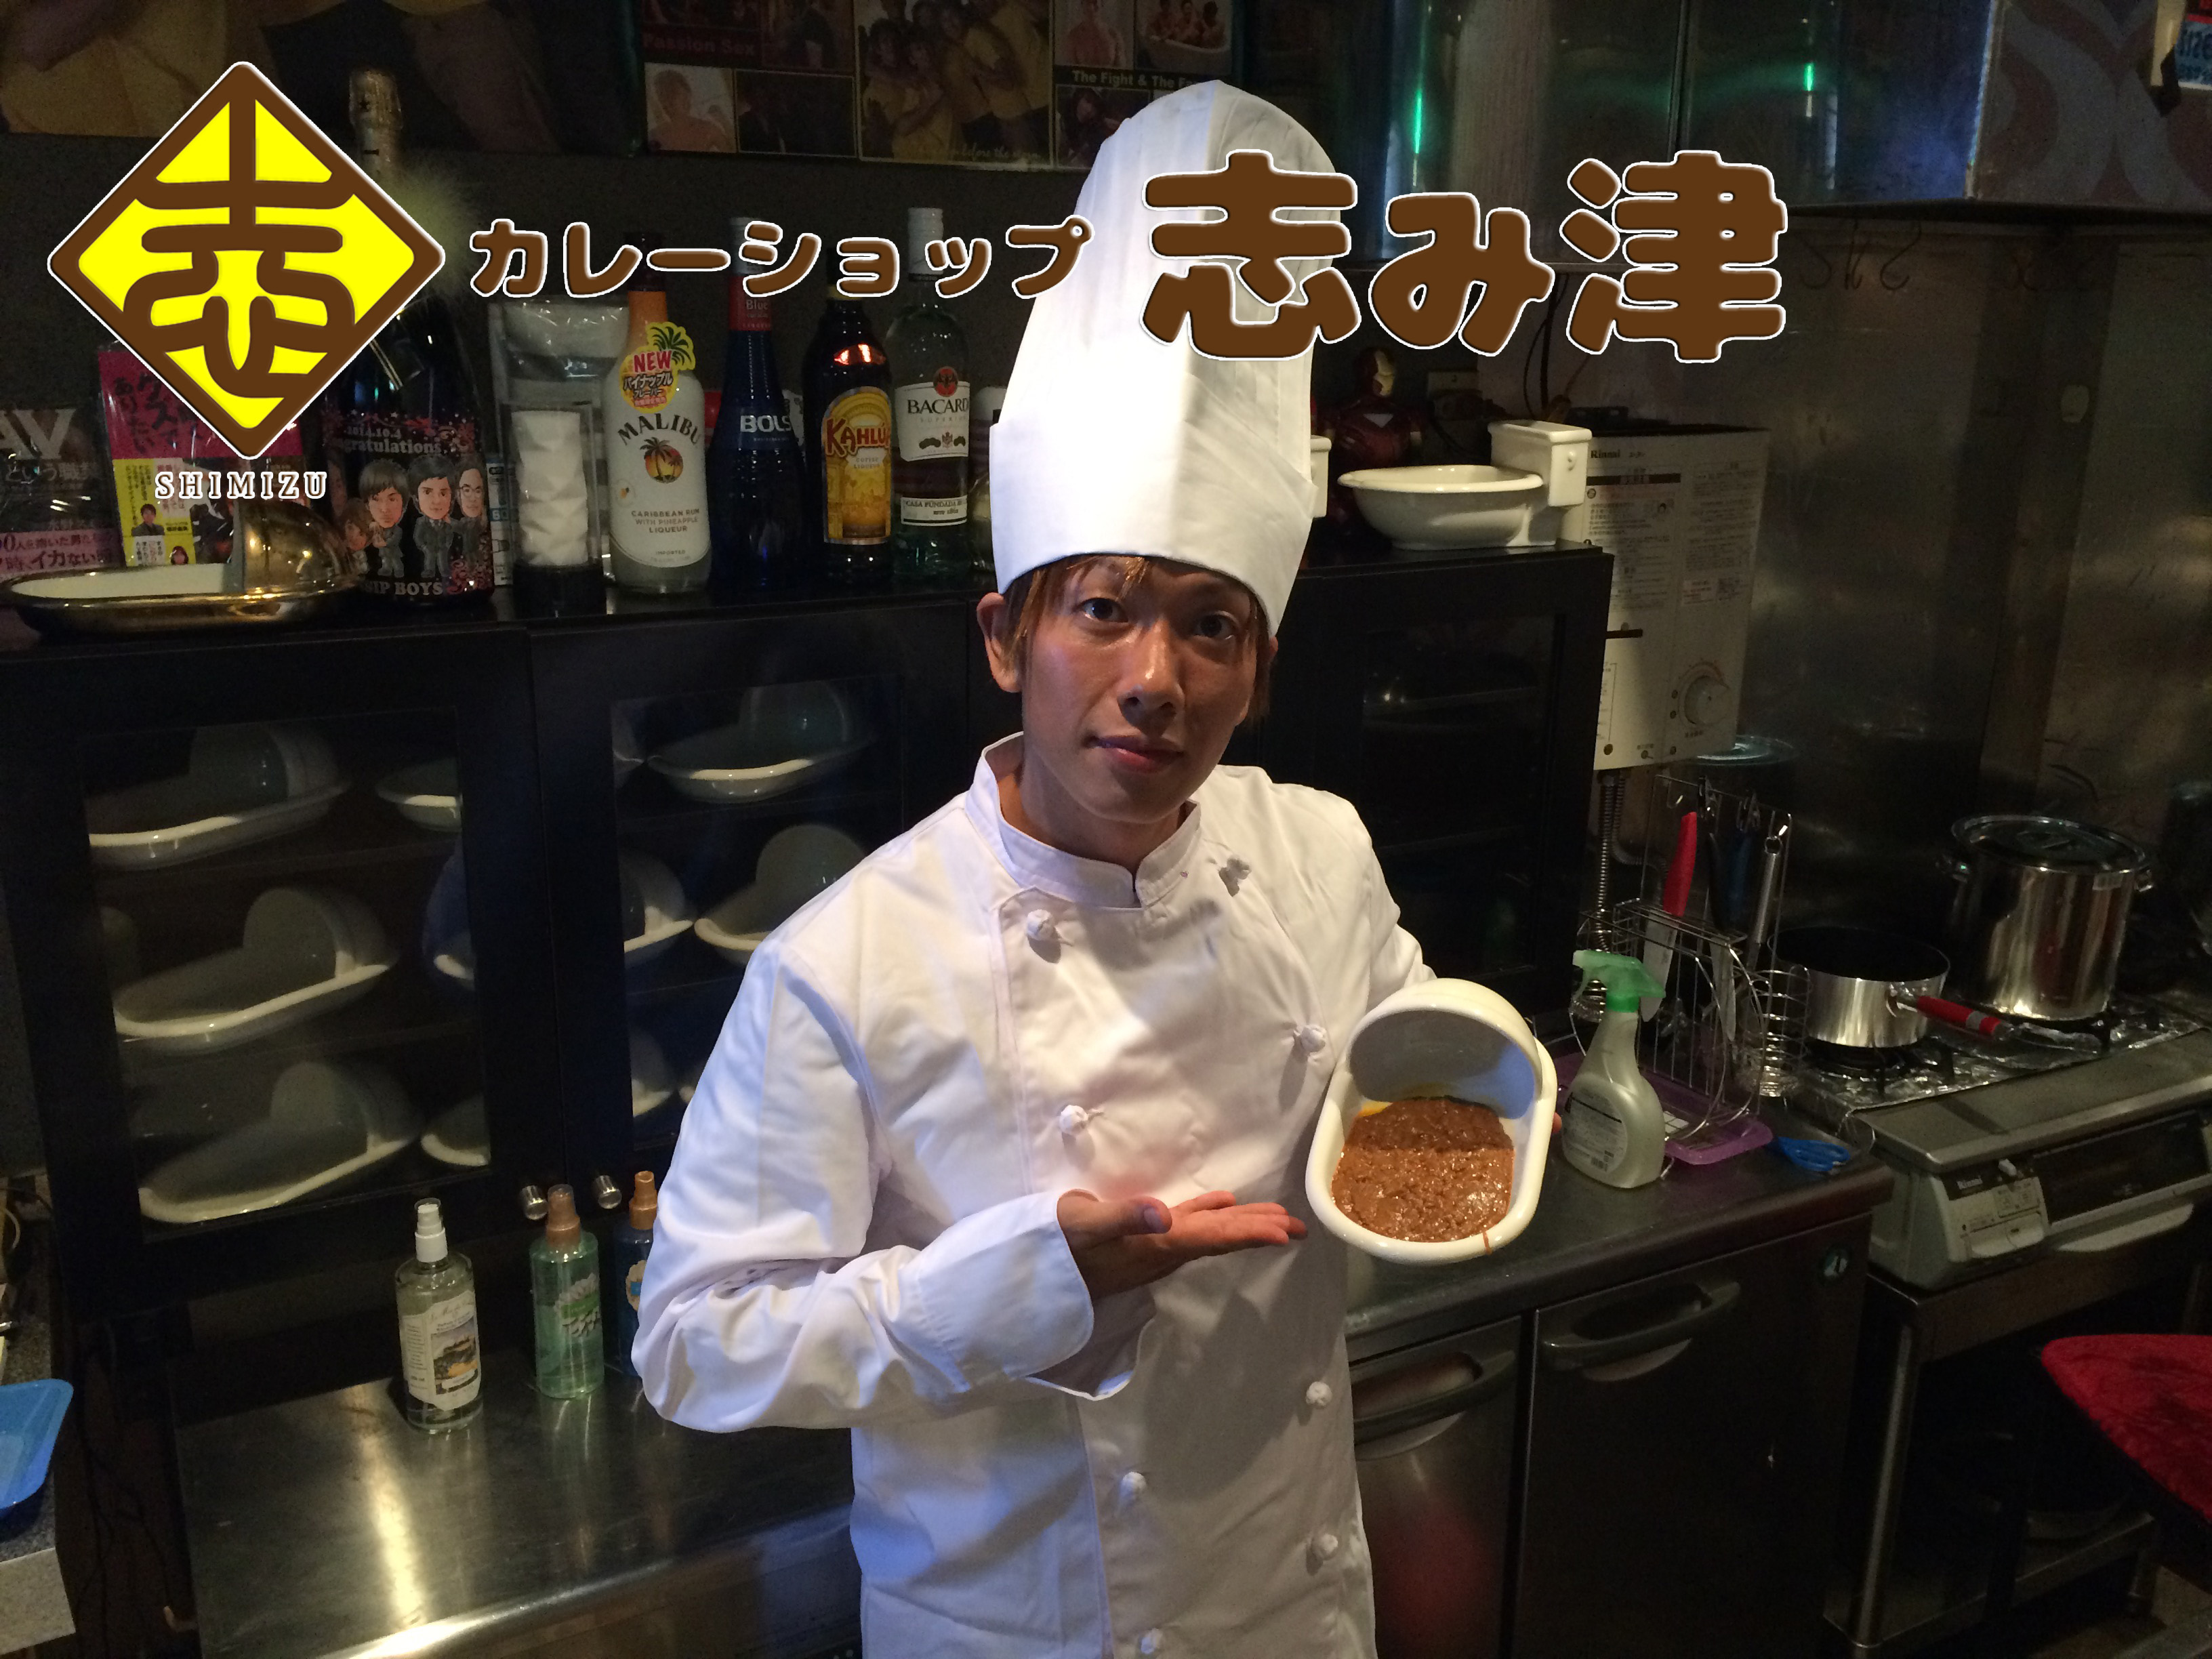 New Tokyo Restaurant Promises Food That Tastes Like Crap Actual Poo Flavored Curry Soranews24 Japan News